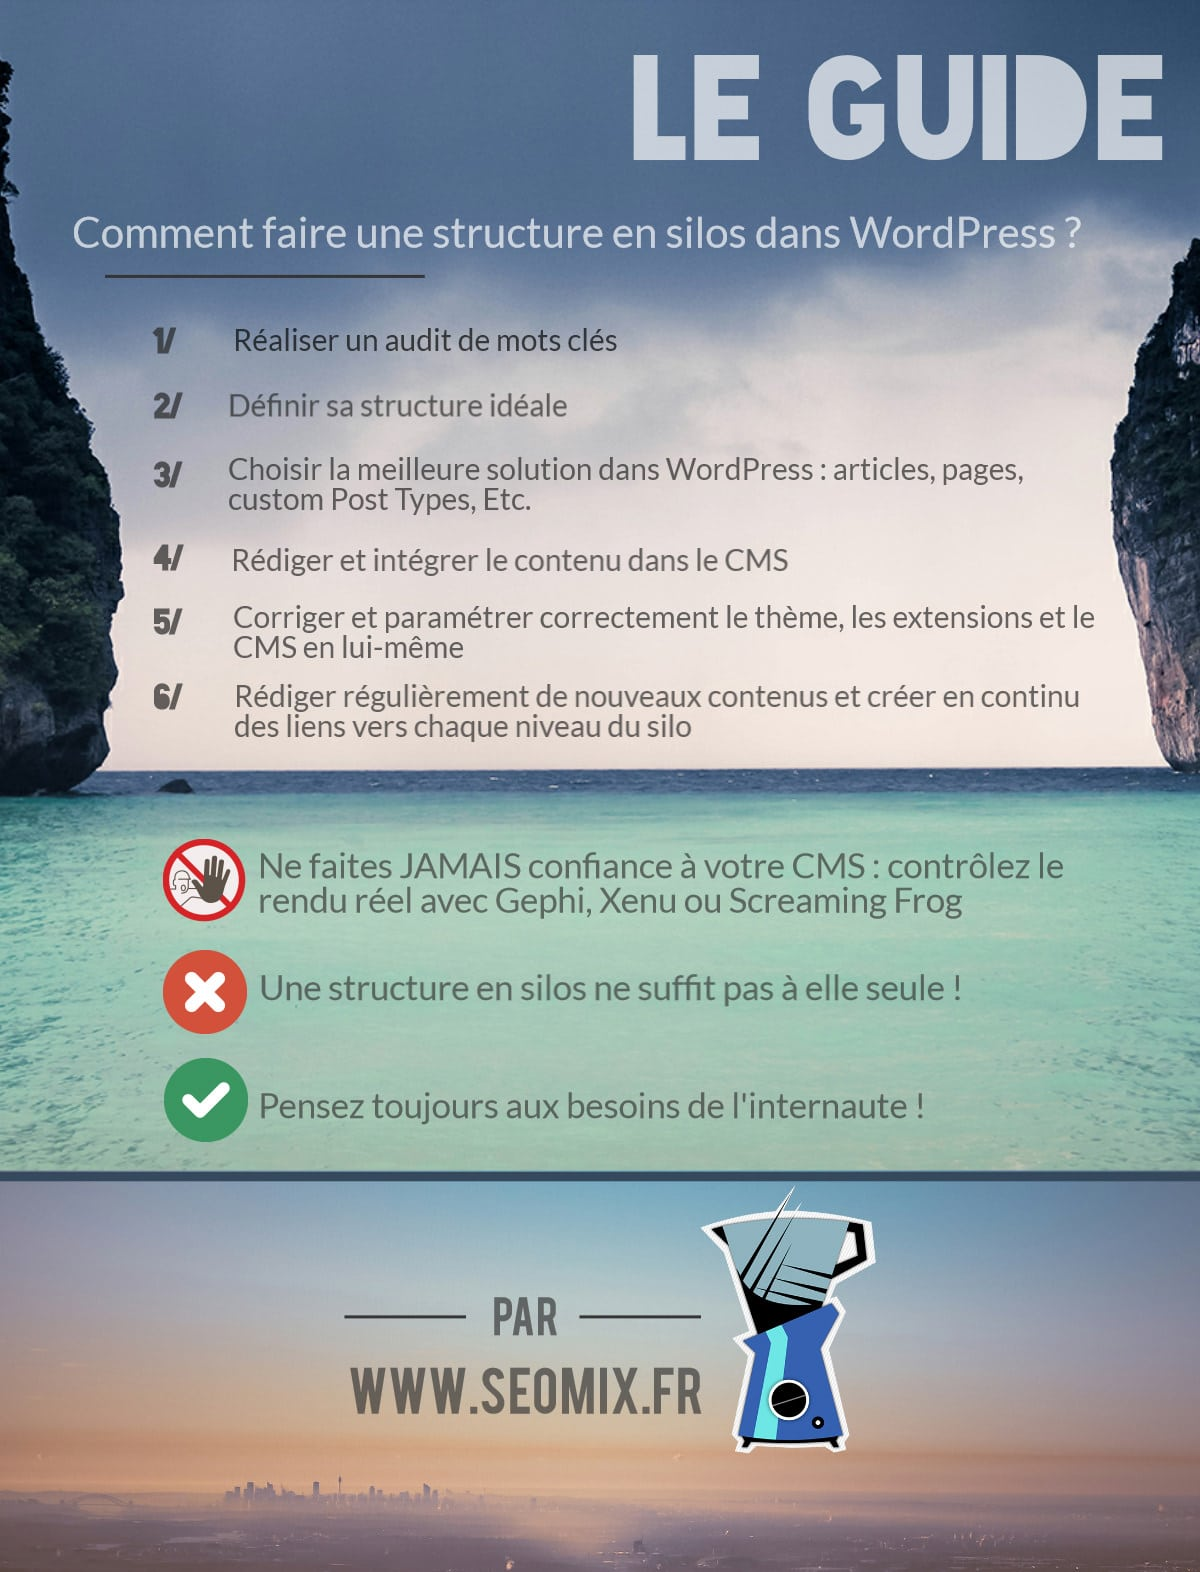 Structure SEO en silos dans WordPress